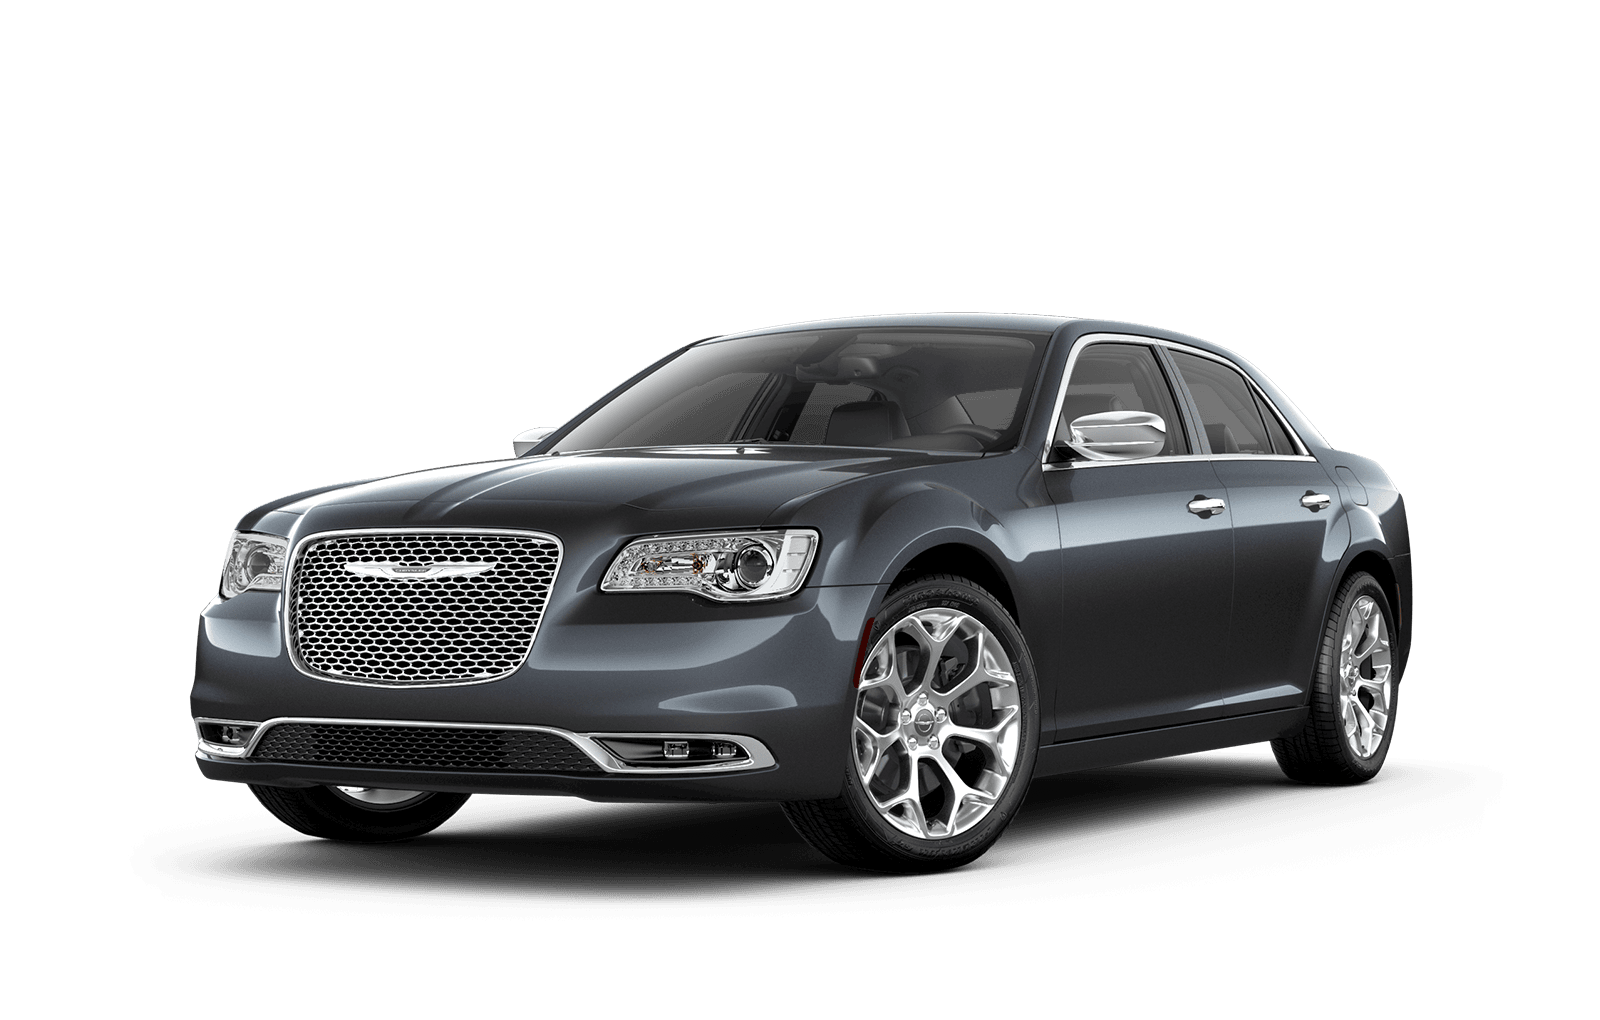 2019 Chrysler 300 Full View in dark grey with Wheels